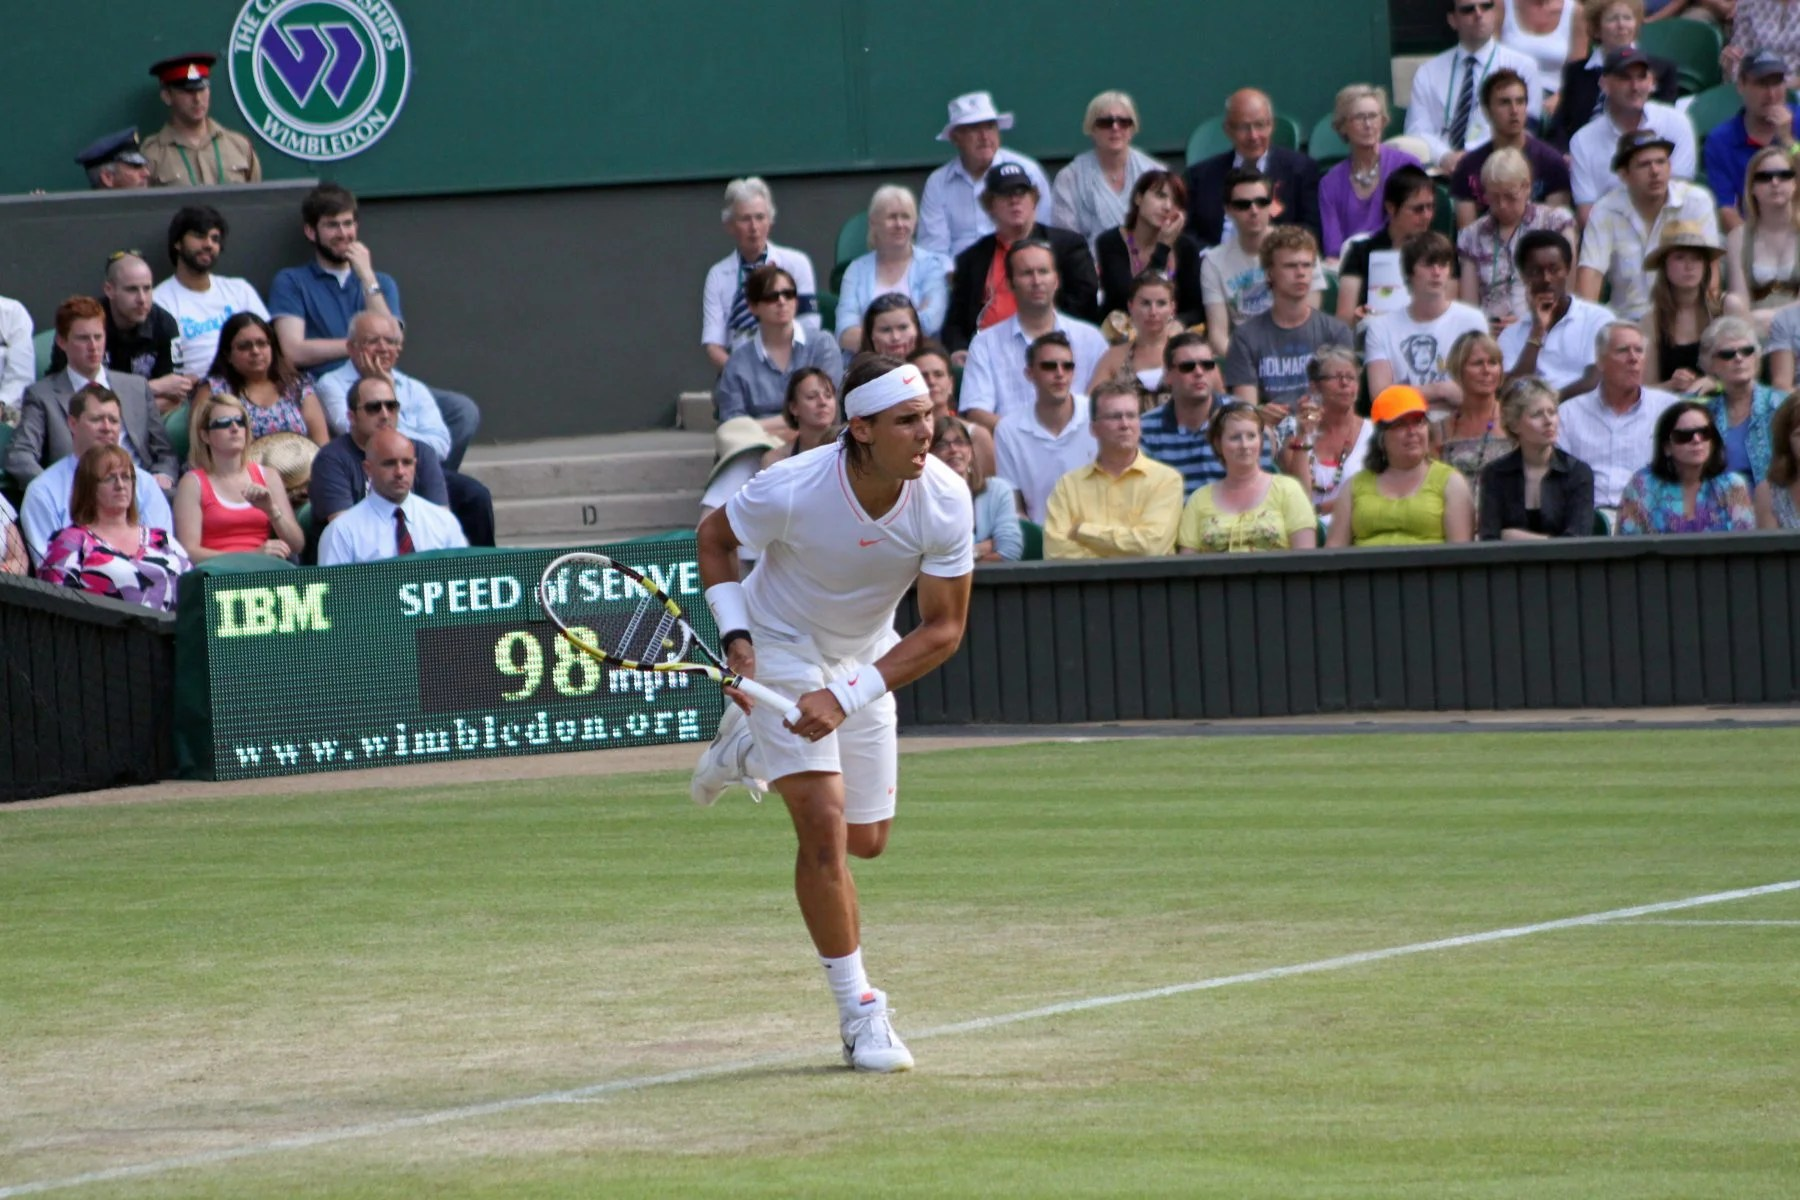 With Marriott Bonvoy Moments You can use Marriott Points Towards Premium Events Like Wimbledon, Stanley Cup, and More.